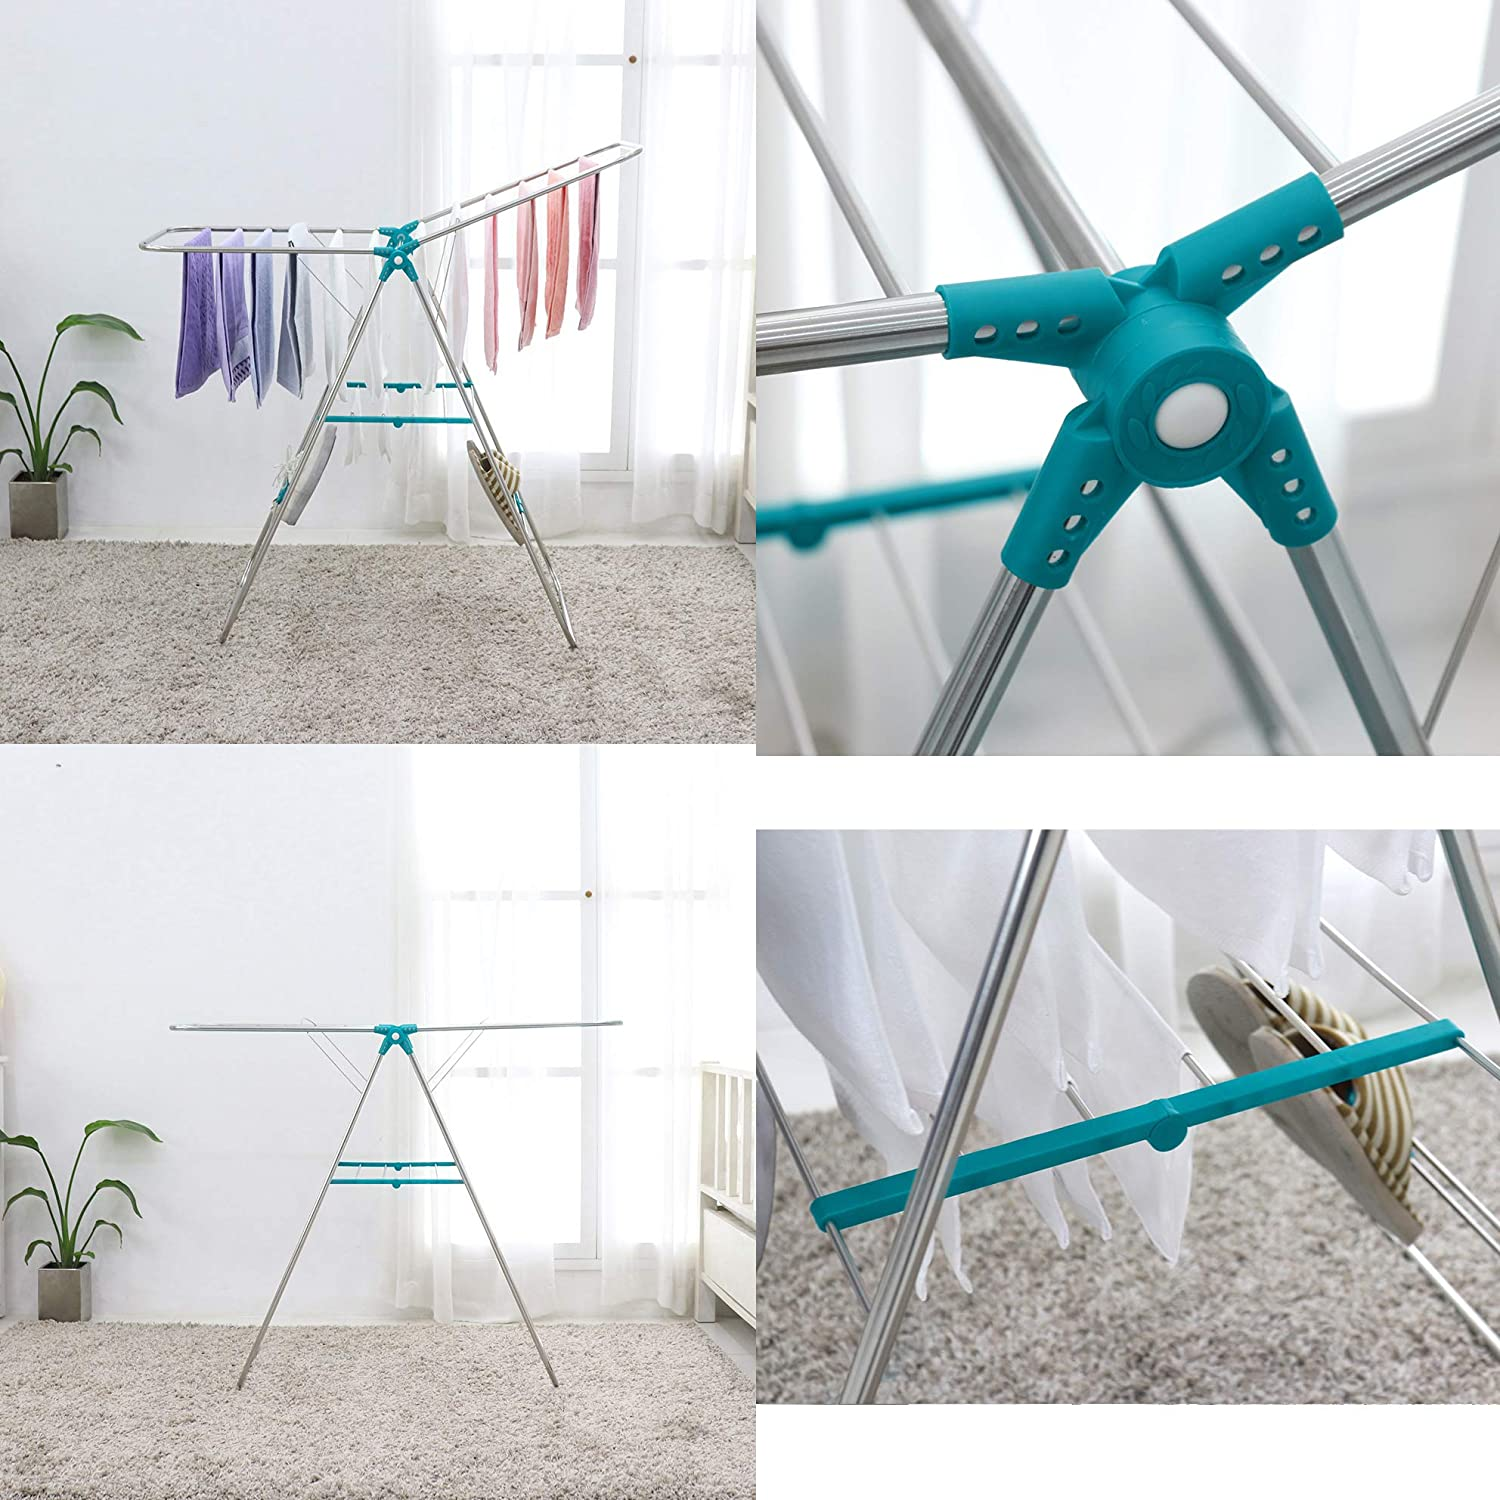 10EA Foldable//Easy Storage Laundry for Indoor and Outdoor Use Pastel AJ12 Stainless Steel Clothes Drying Rack Made in Korea Gullwing Space-Saving Laundry Rack with Shoes Hanger Clothespins